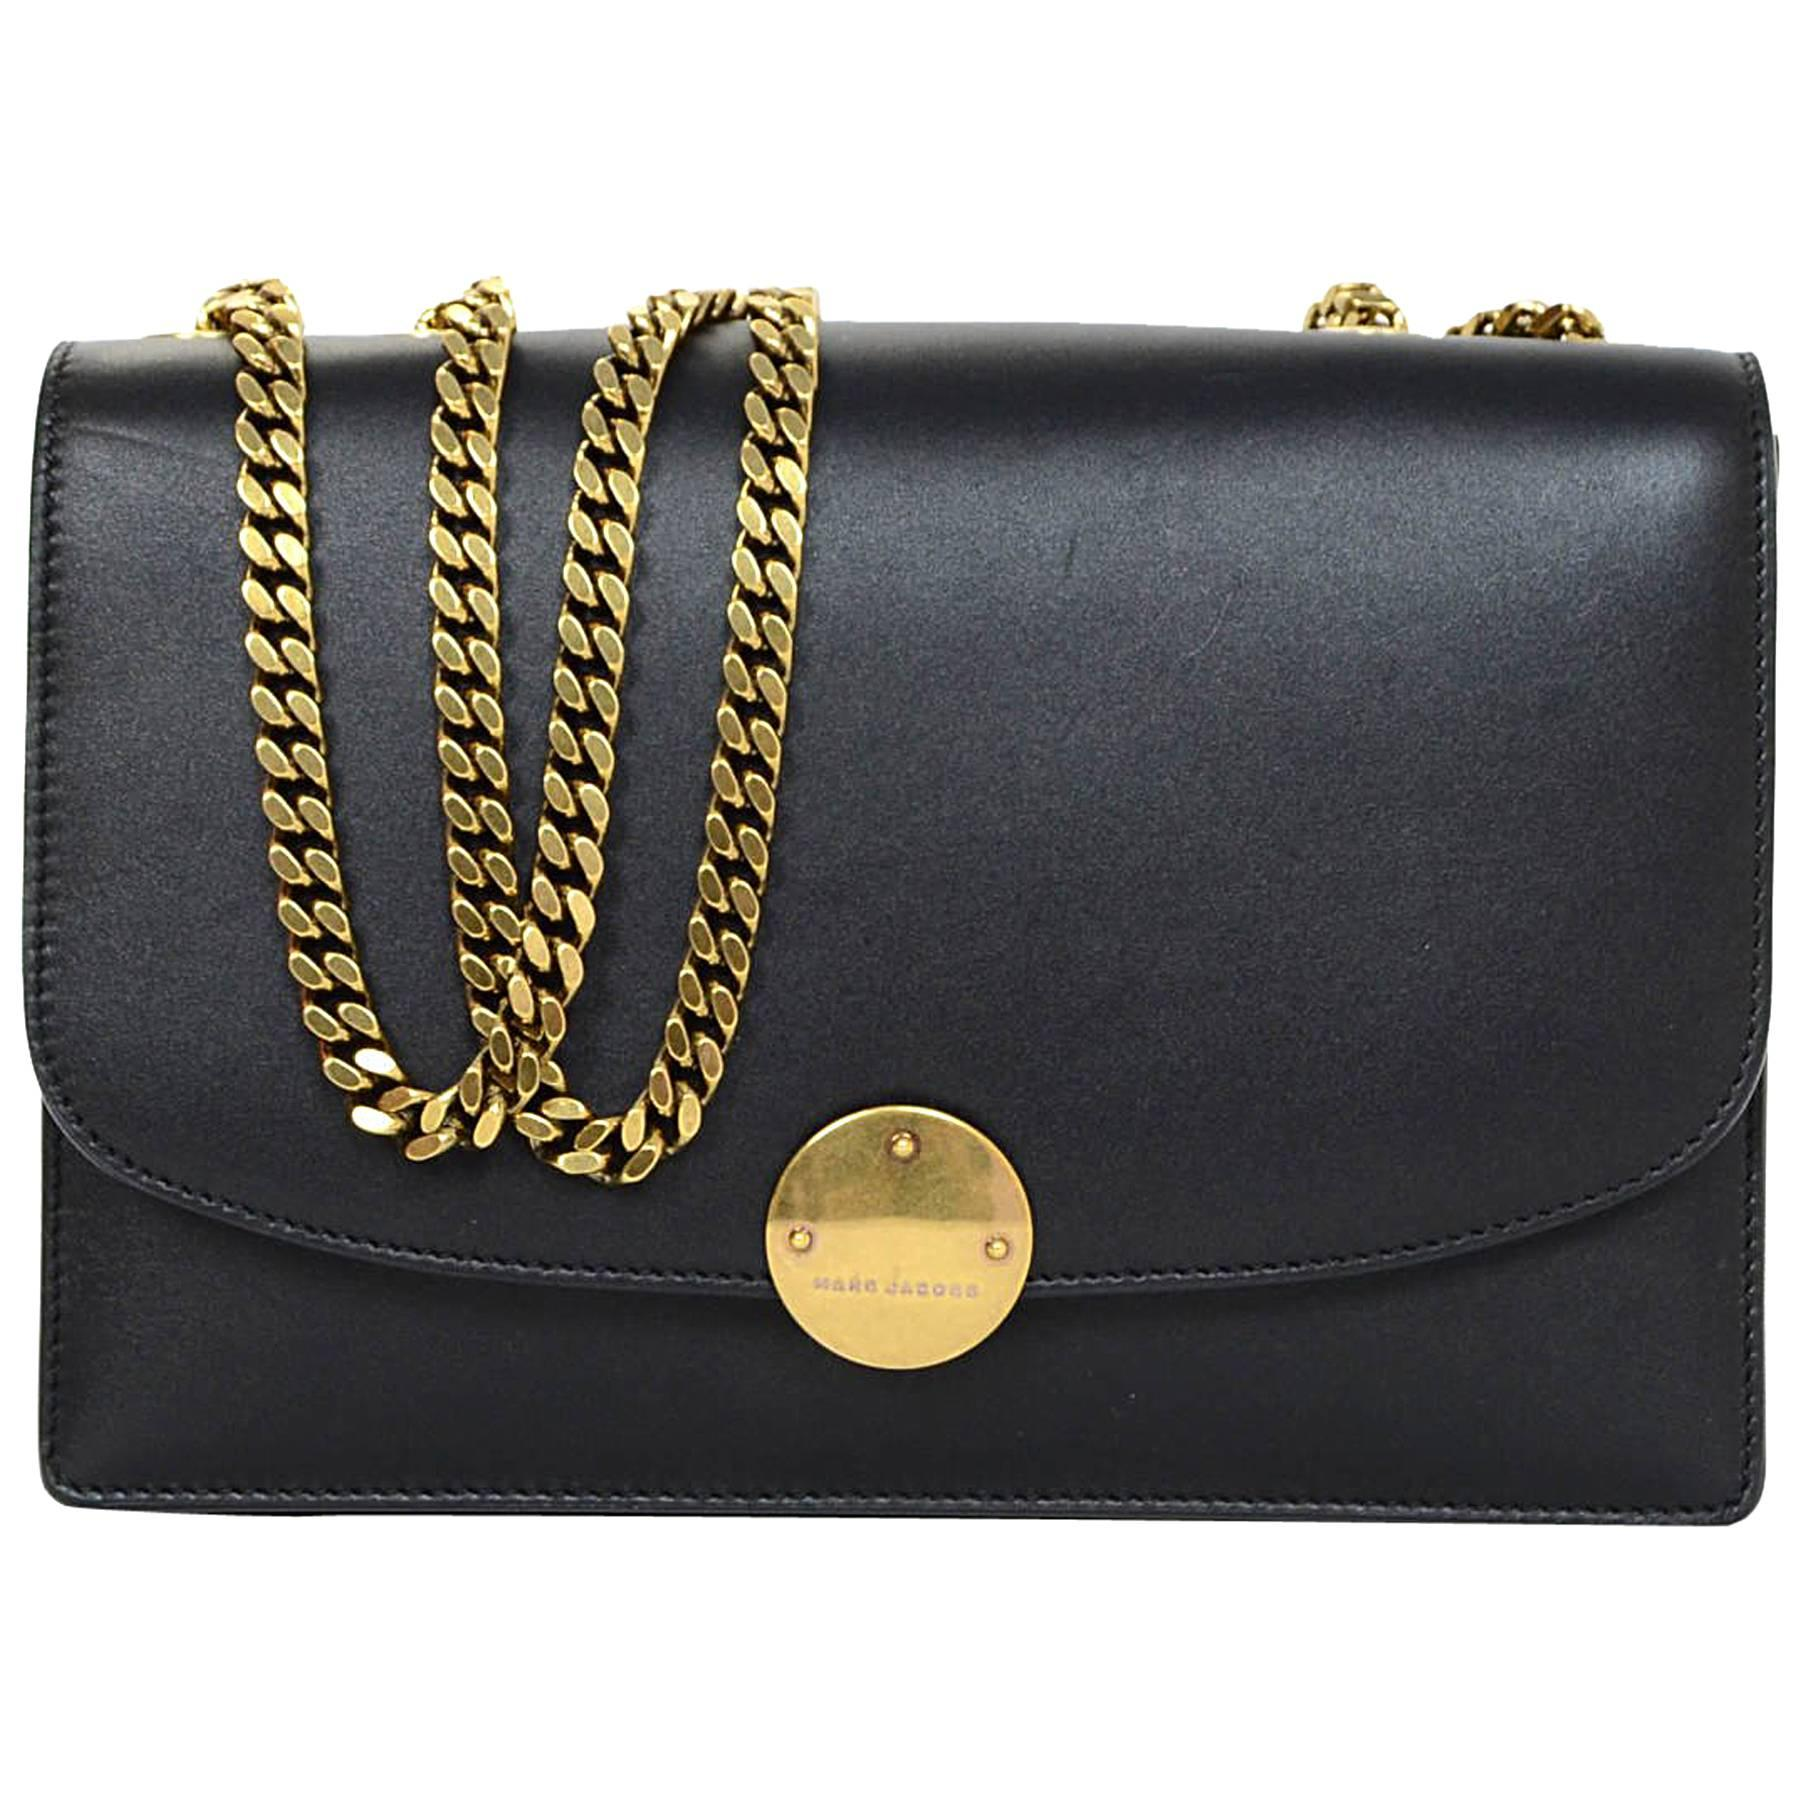 Marc Jacobs Black Leather Big Trouble Bag With Dust Bag UC5XW20Yl